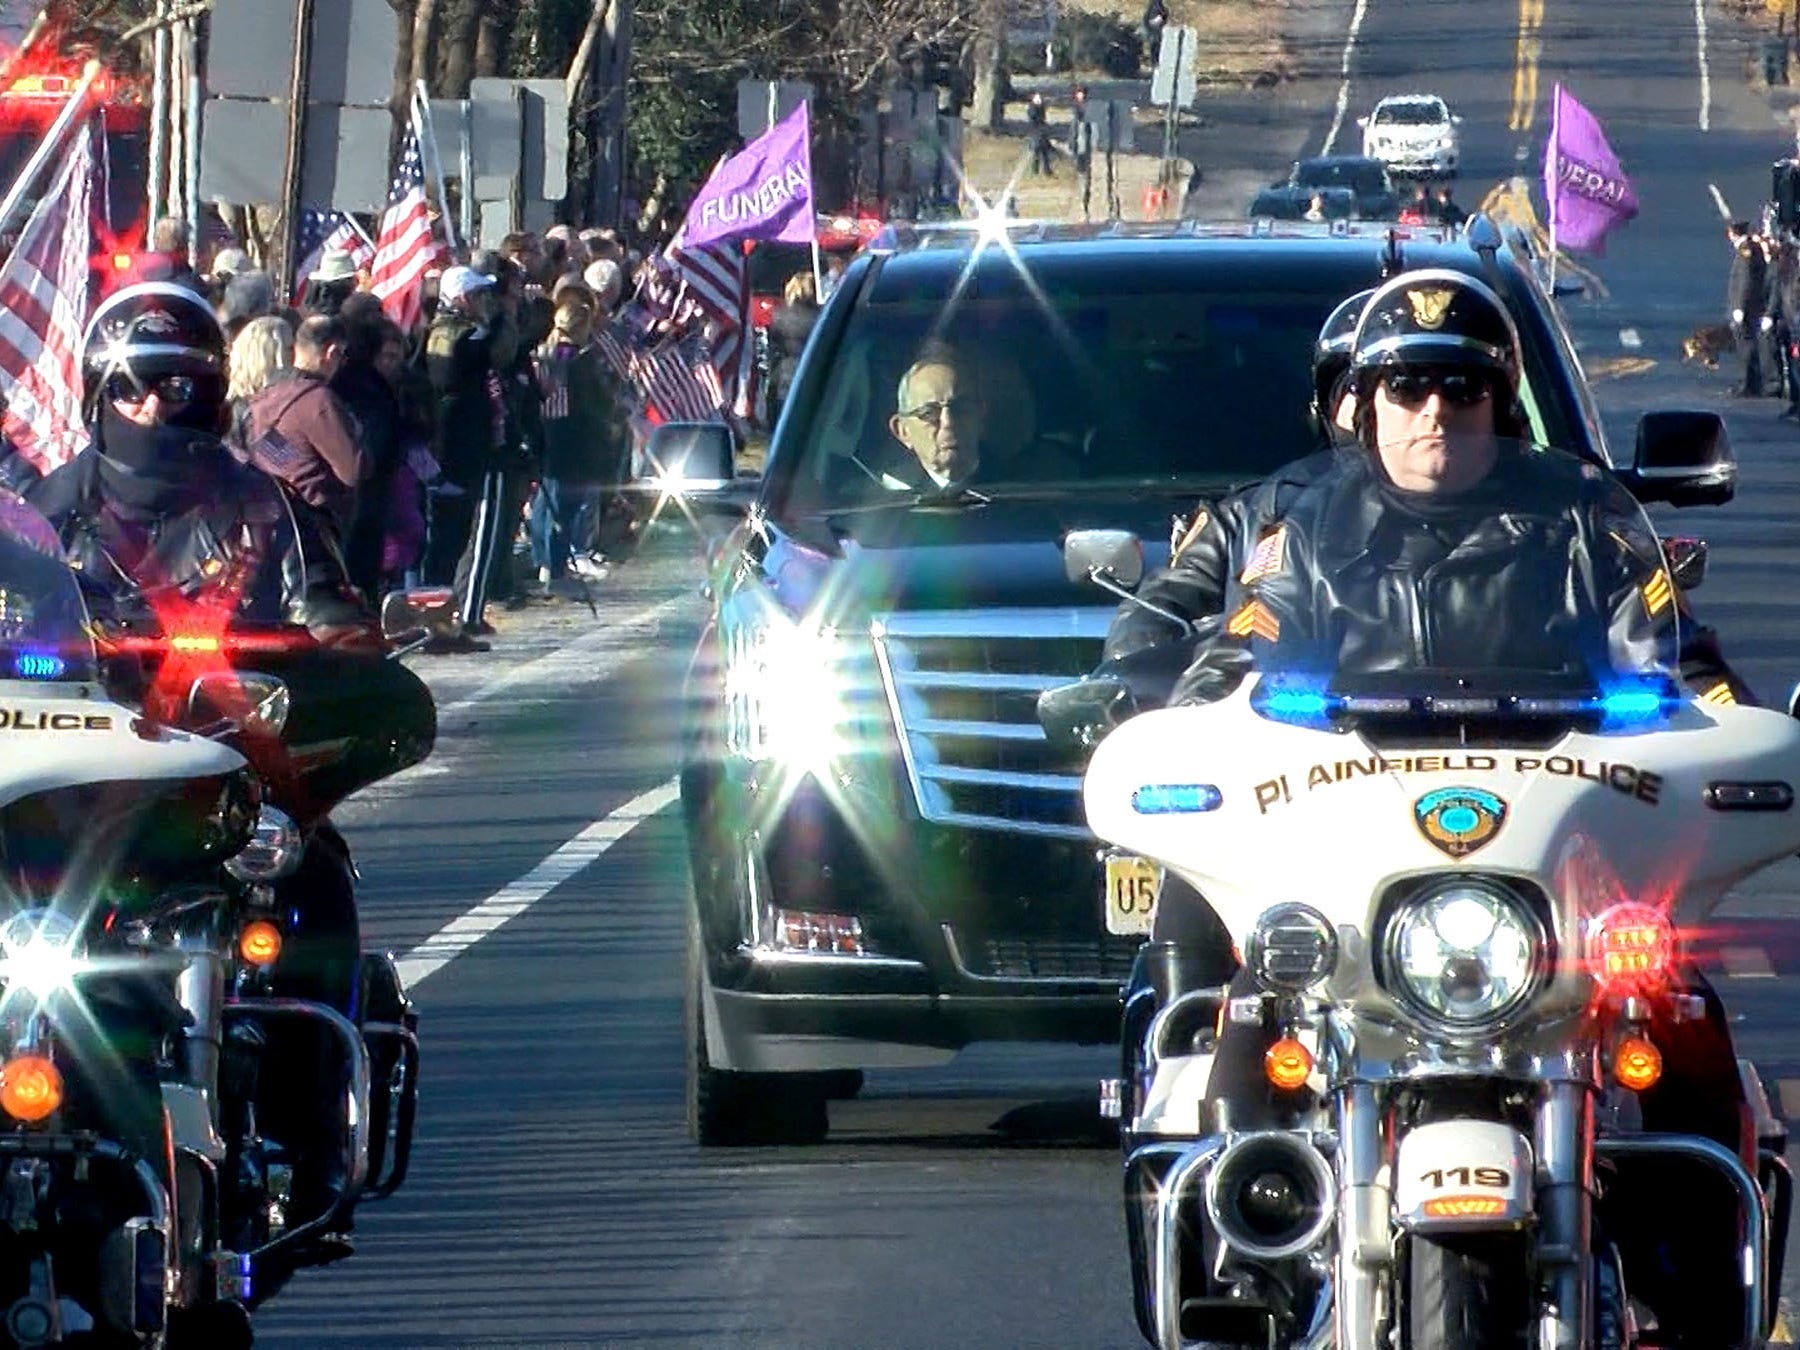 Plainfield Police motorcycles help lead the funeral procession for Army Private First Class Jamie Riley along Harding Road in Fair Haven Monday morning, February 4, 2019.   Riley, who is from the town and the son of Plainfield Police Director Carl Riley, died along with another soldier in a crash between two Stryker vehicles at McGregor Range in New Mexico.